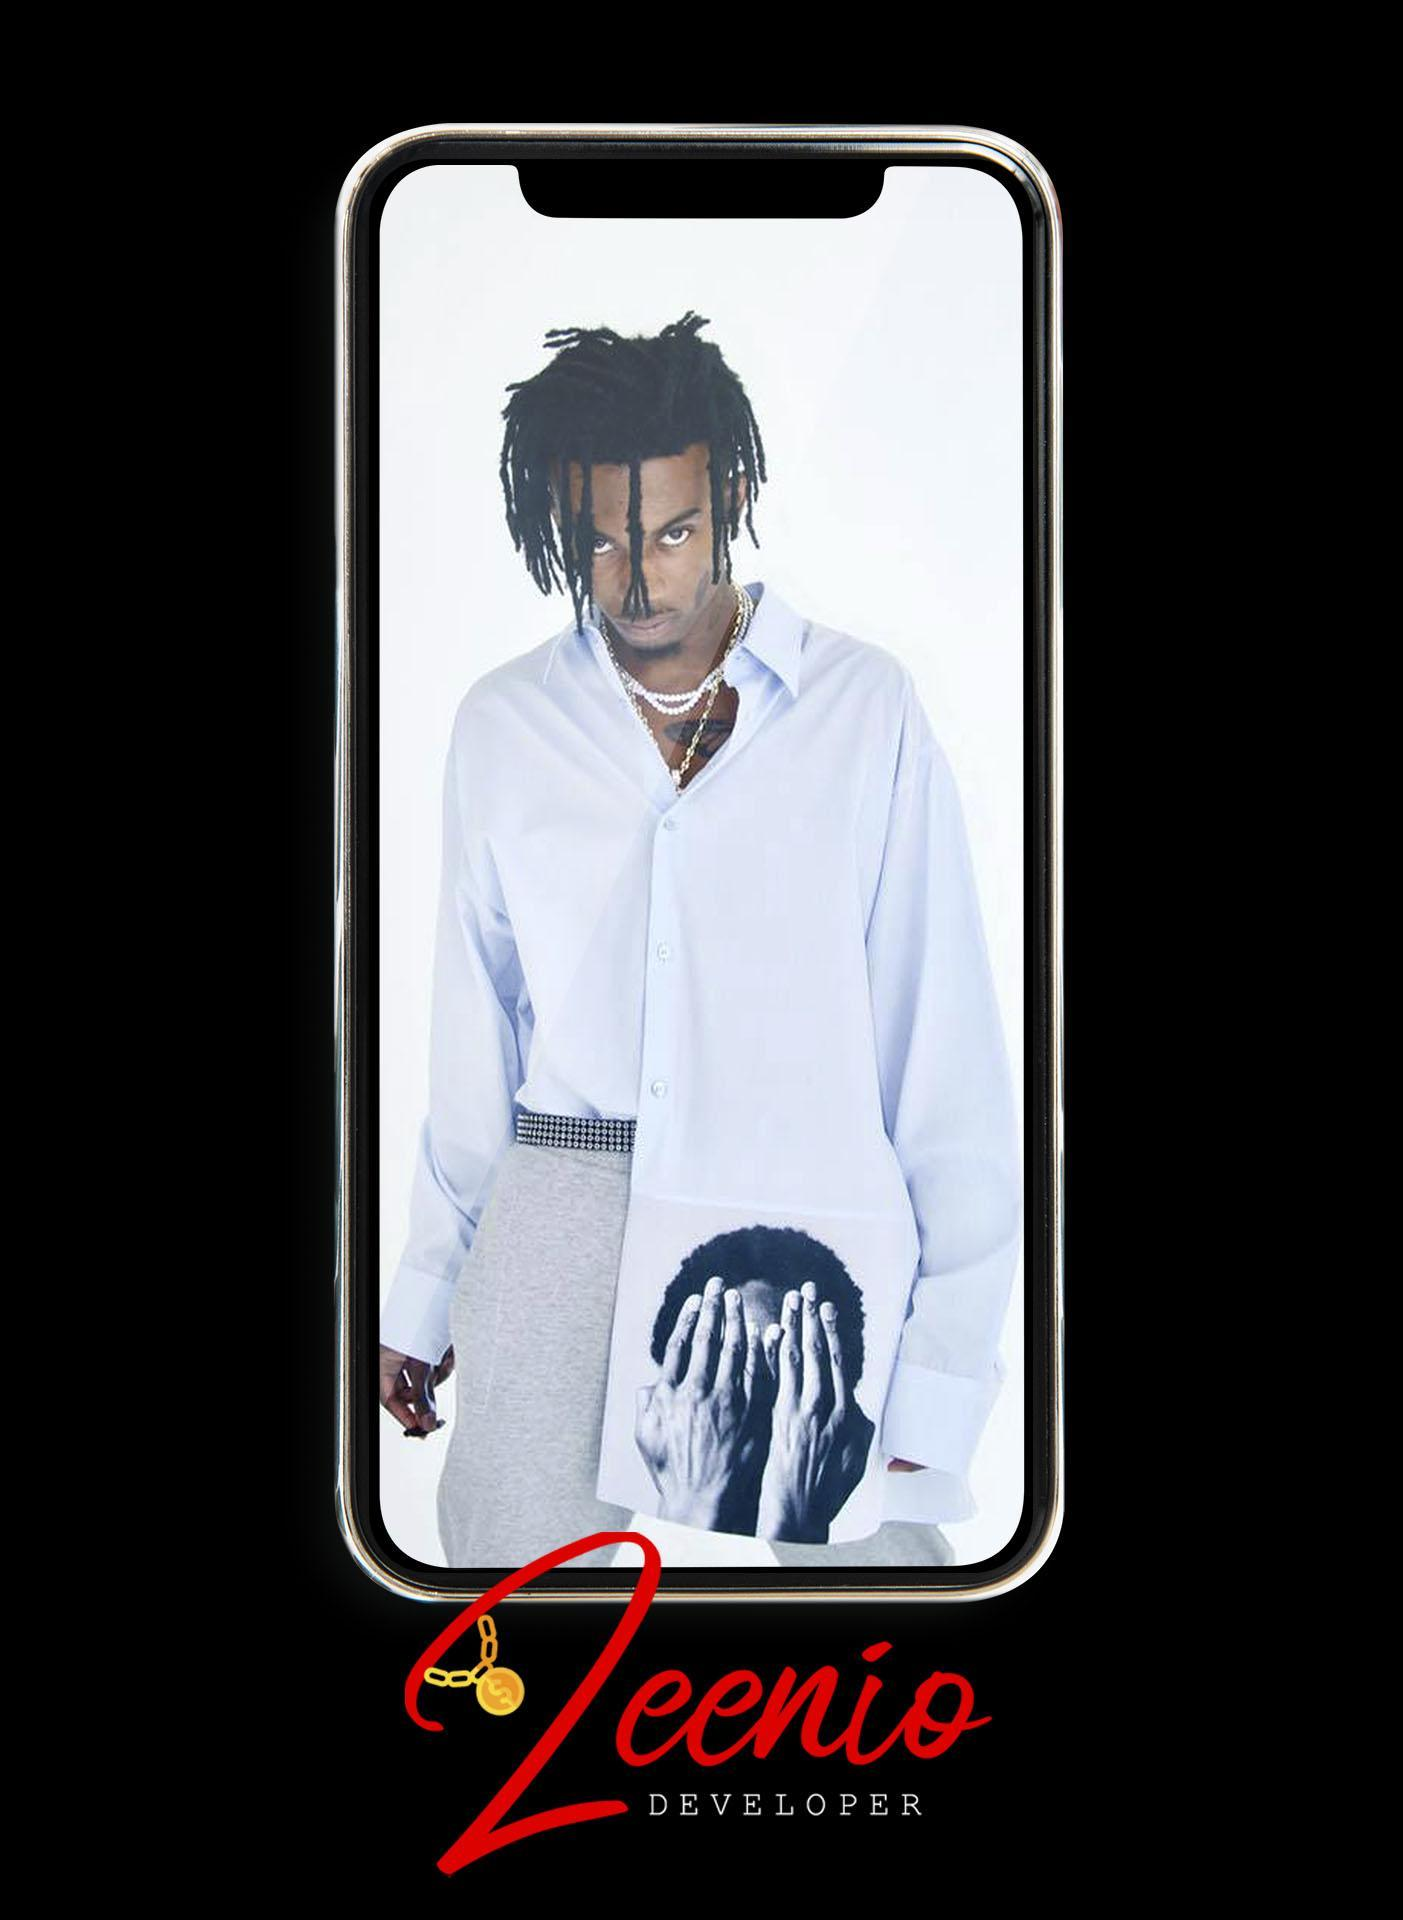 Playboi Carti Wallpaper For Android Apk Download